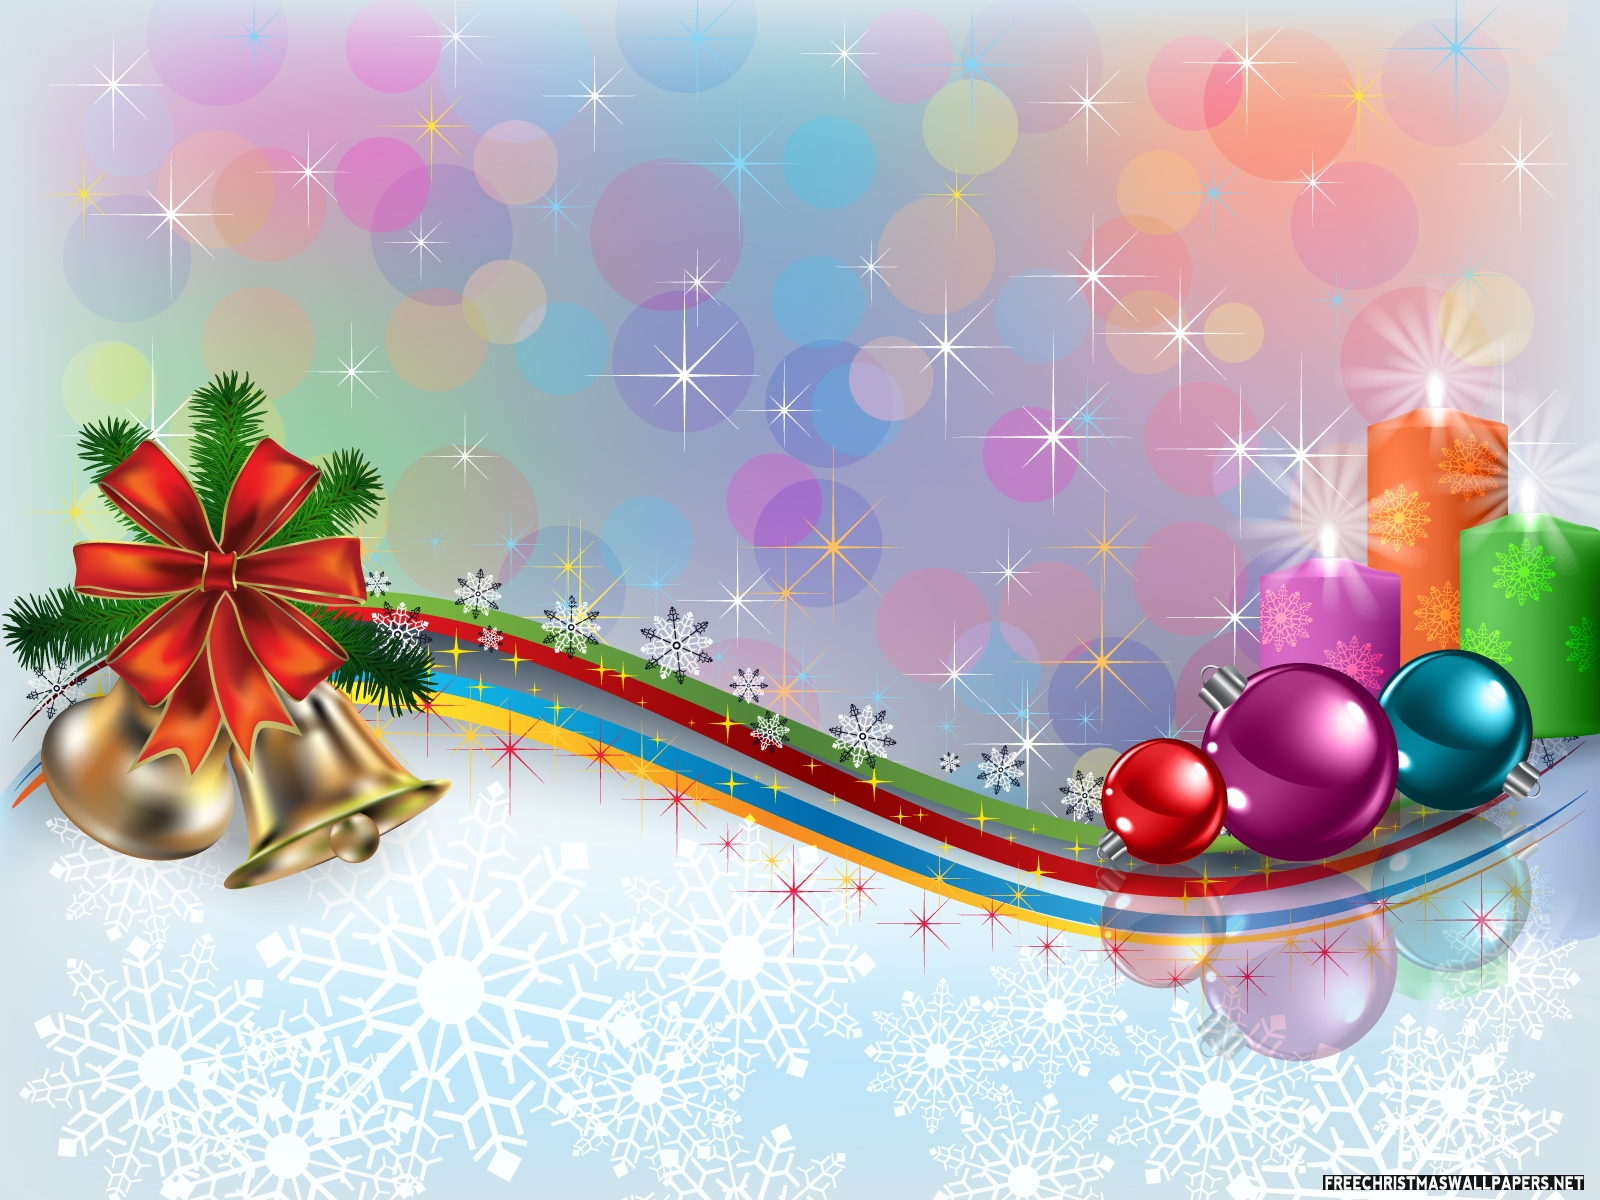 New free collection of hd christmas wallpapers psdreview